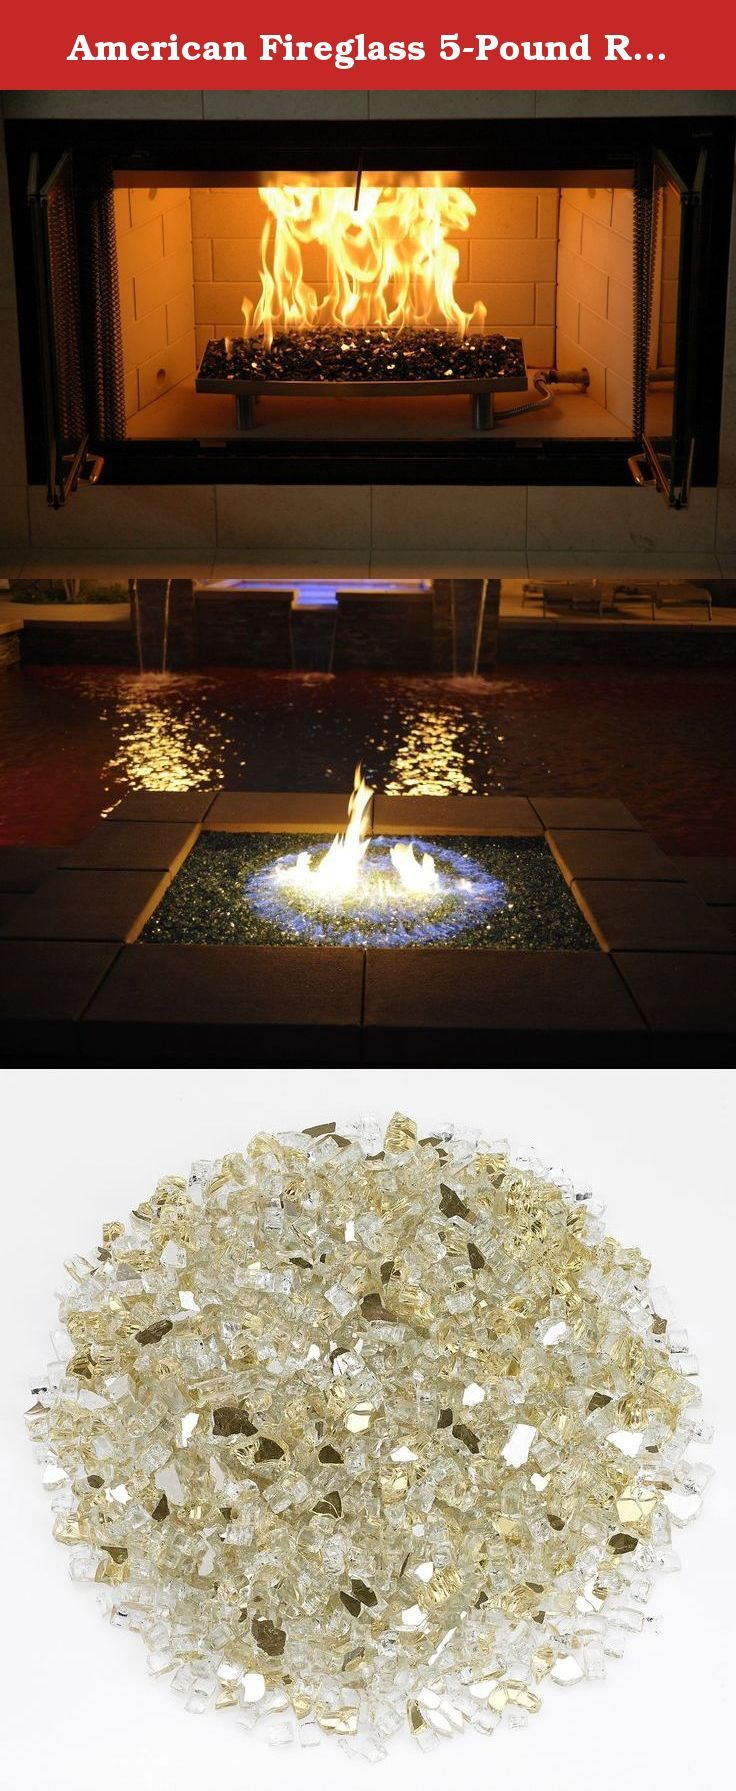 17 Best Ideas About Fireplace Glass On Pinterest Open Fireplace Modern Fireplaces And